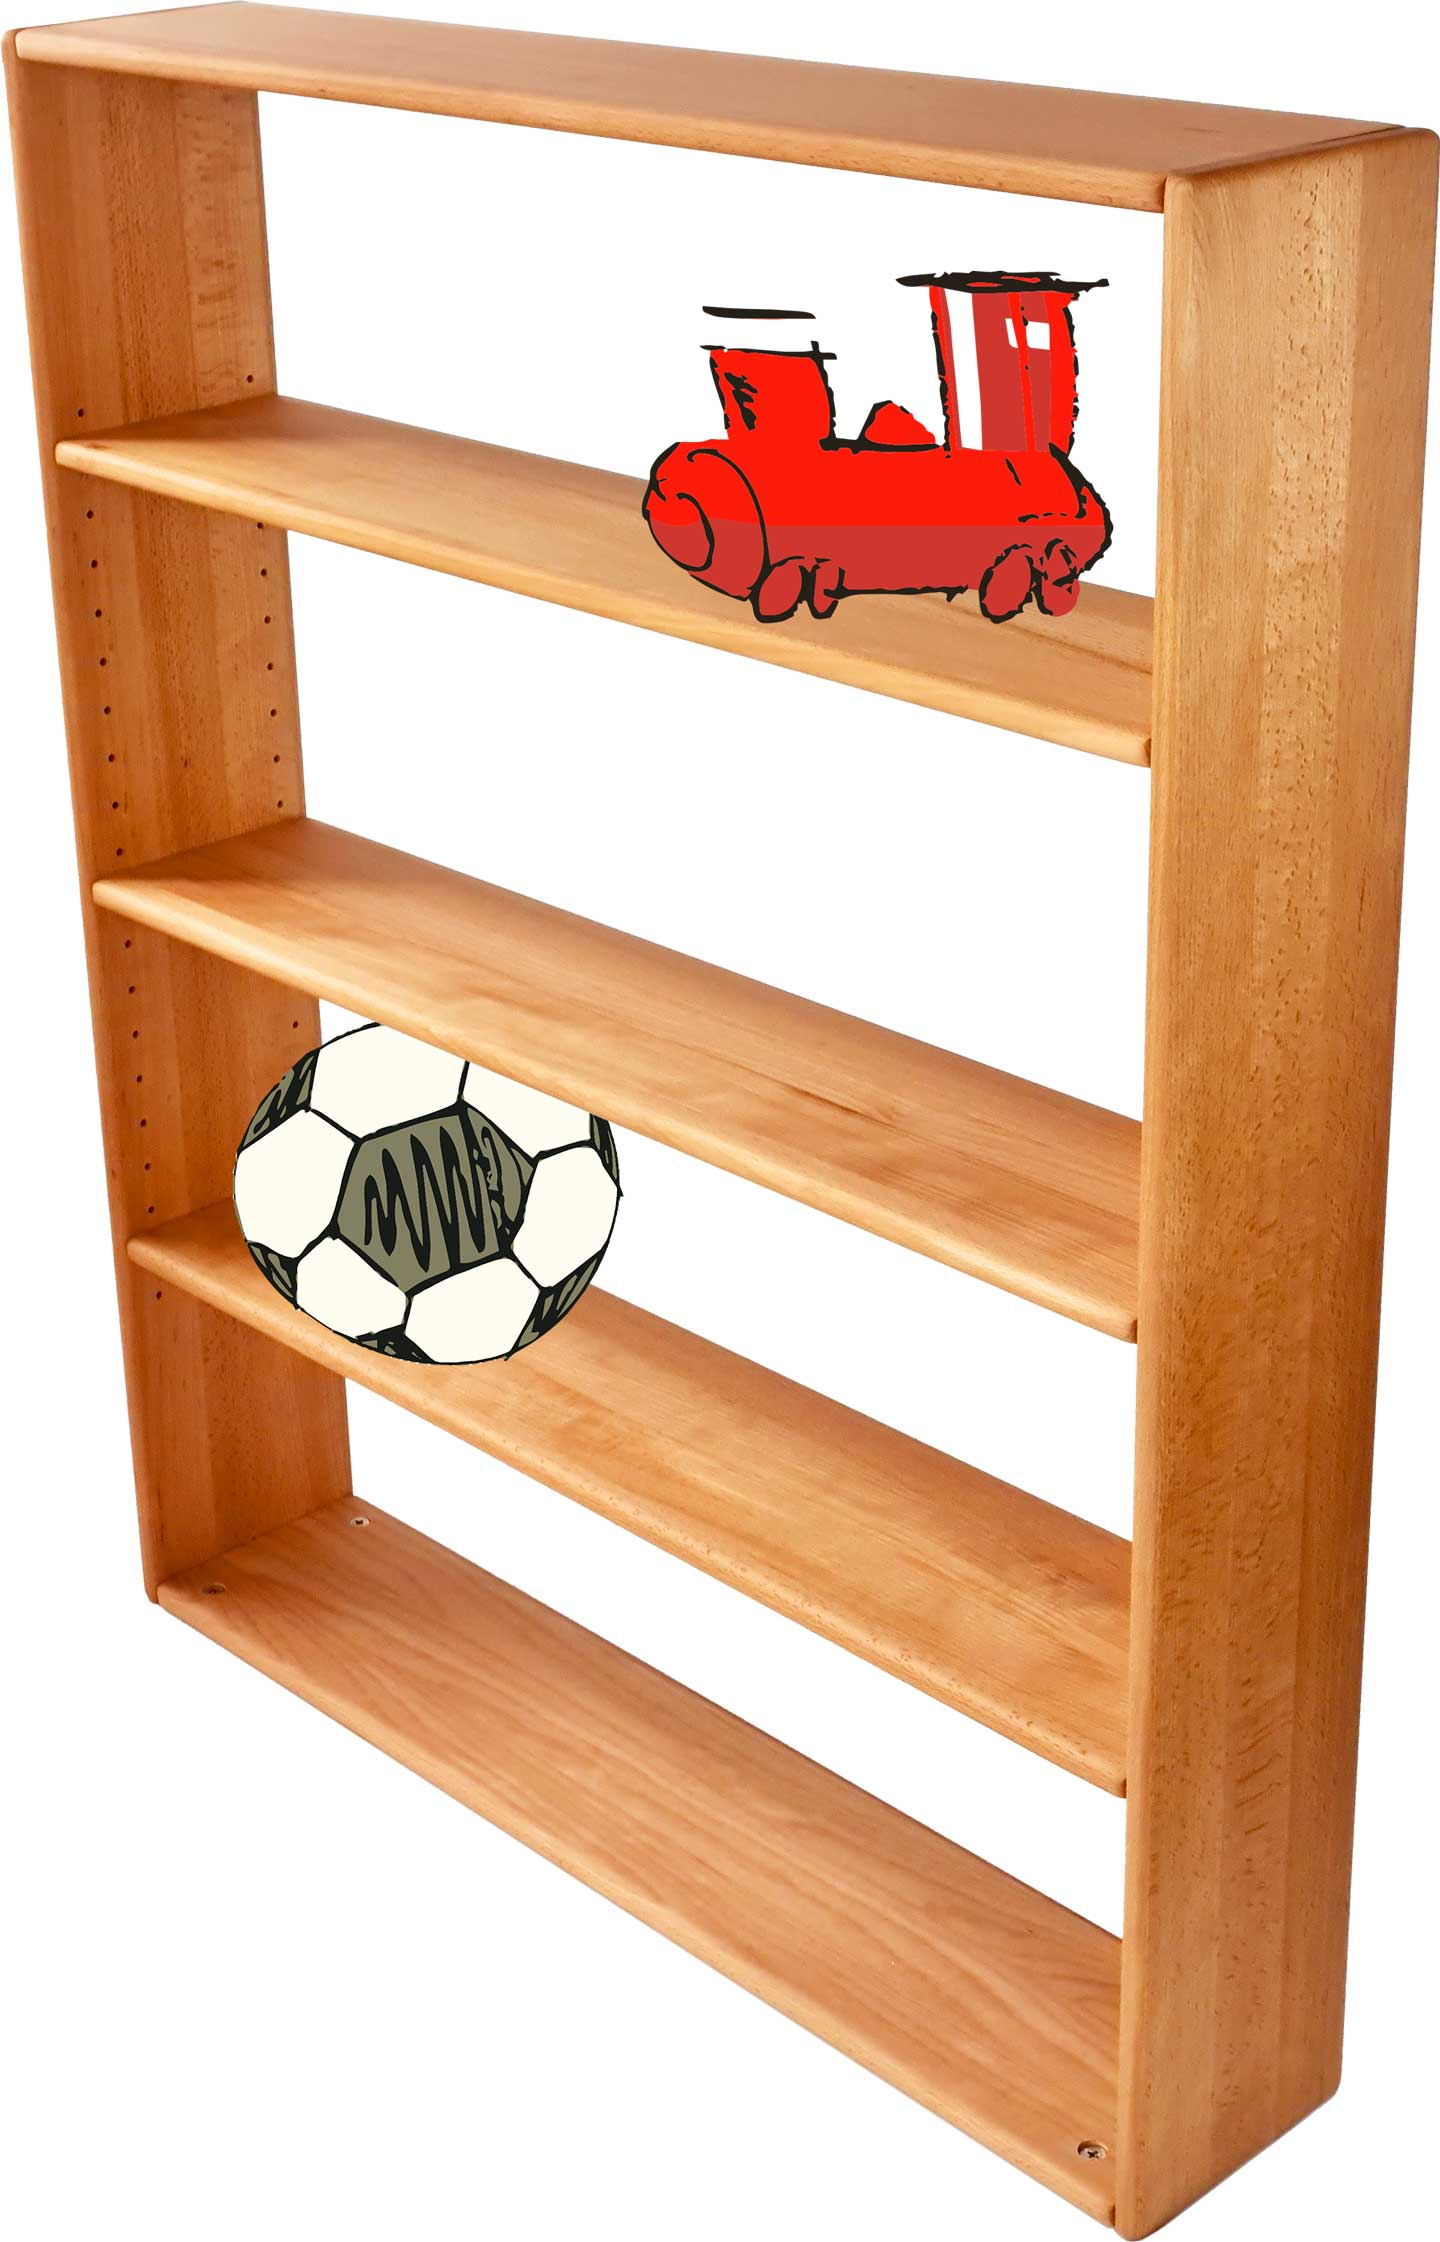 Shelves and racks for the loft bed or bunk bed